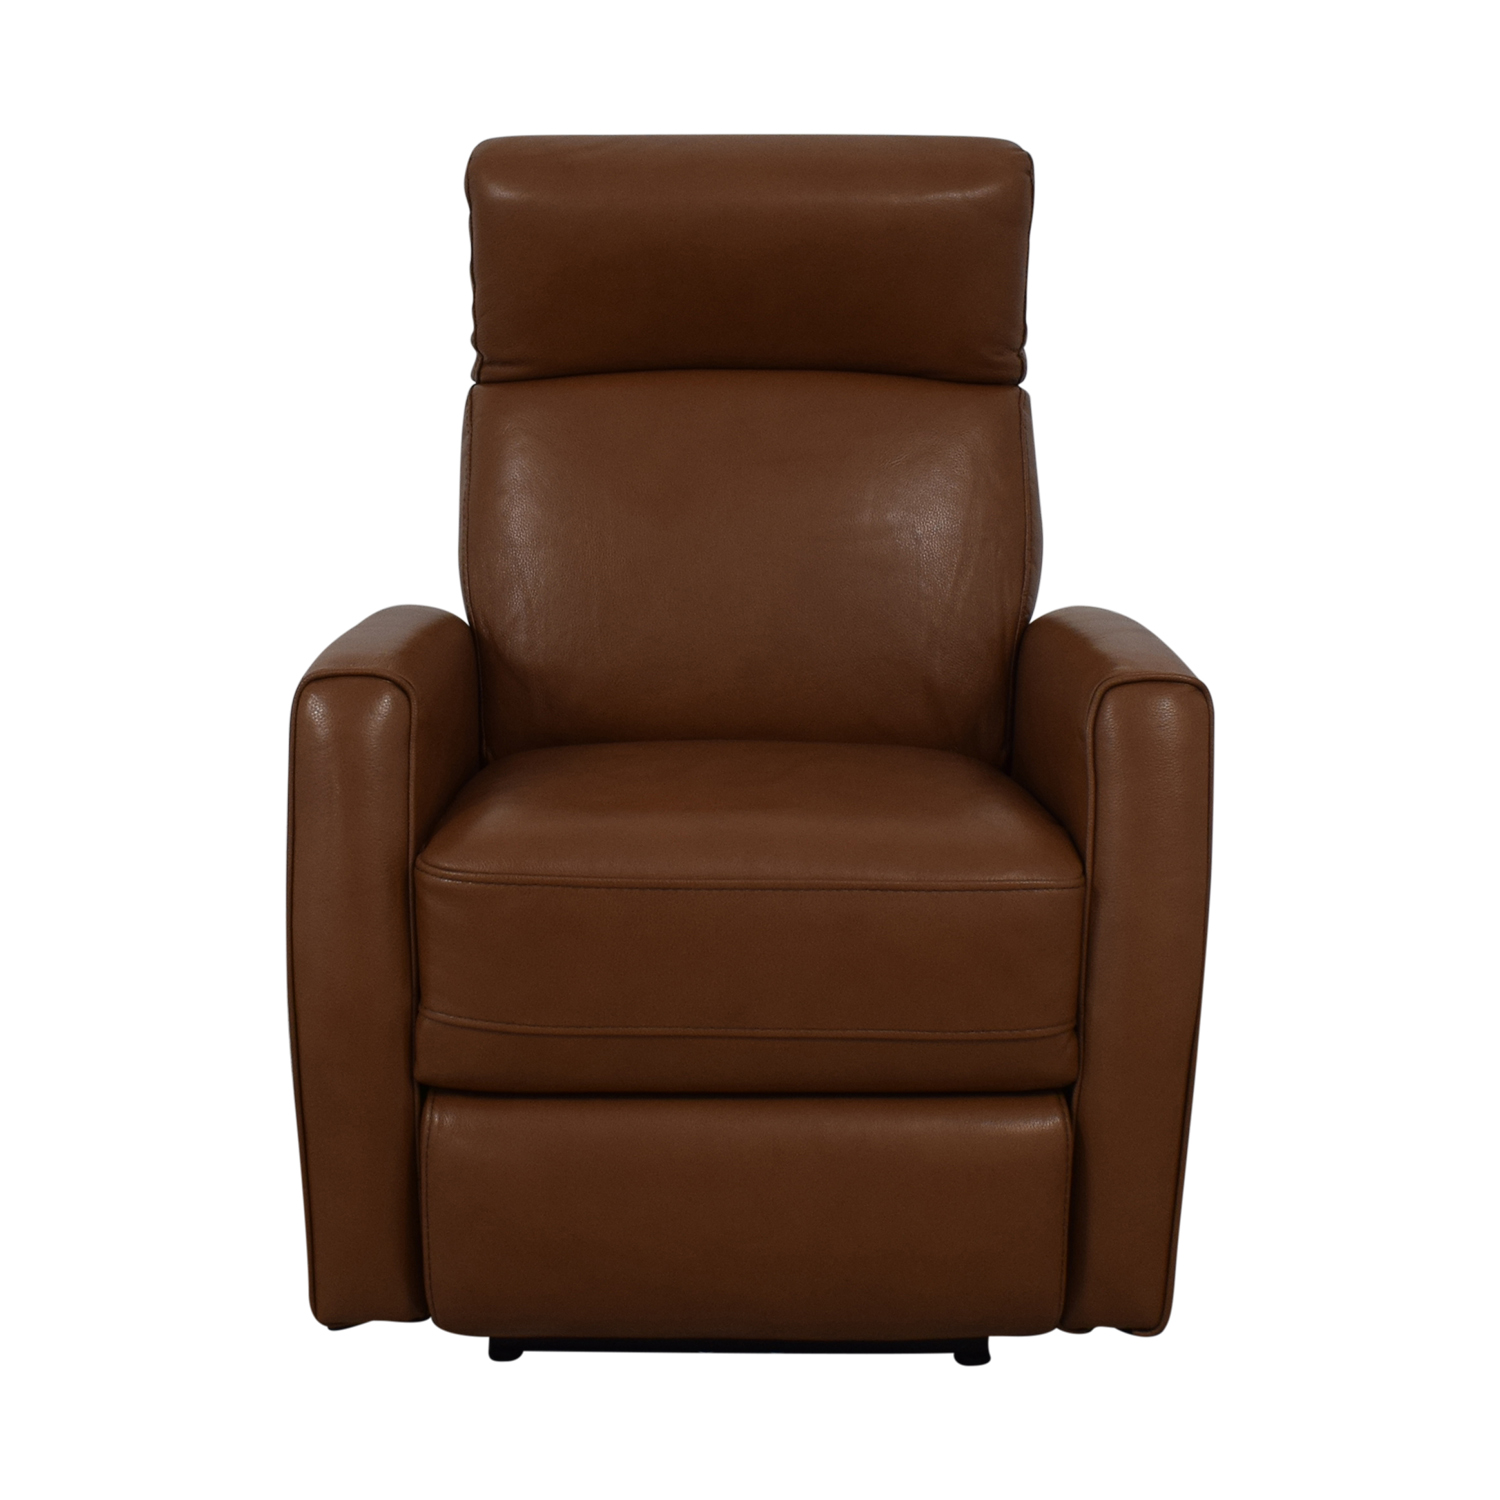 Macys Recliner Chairs